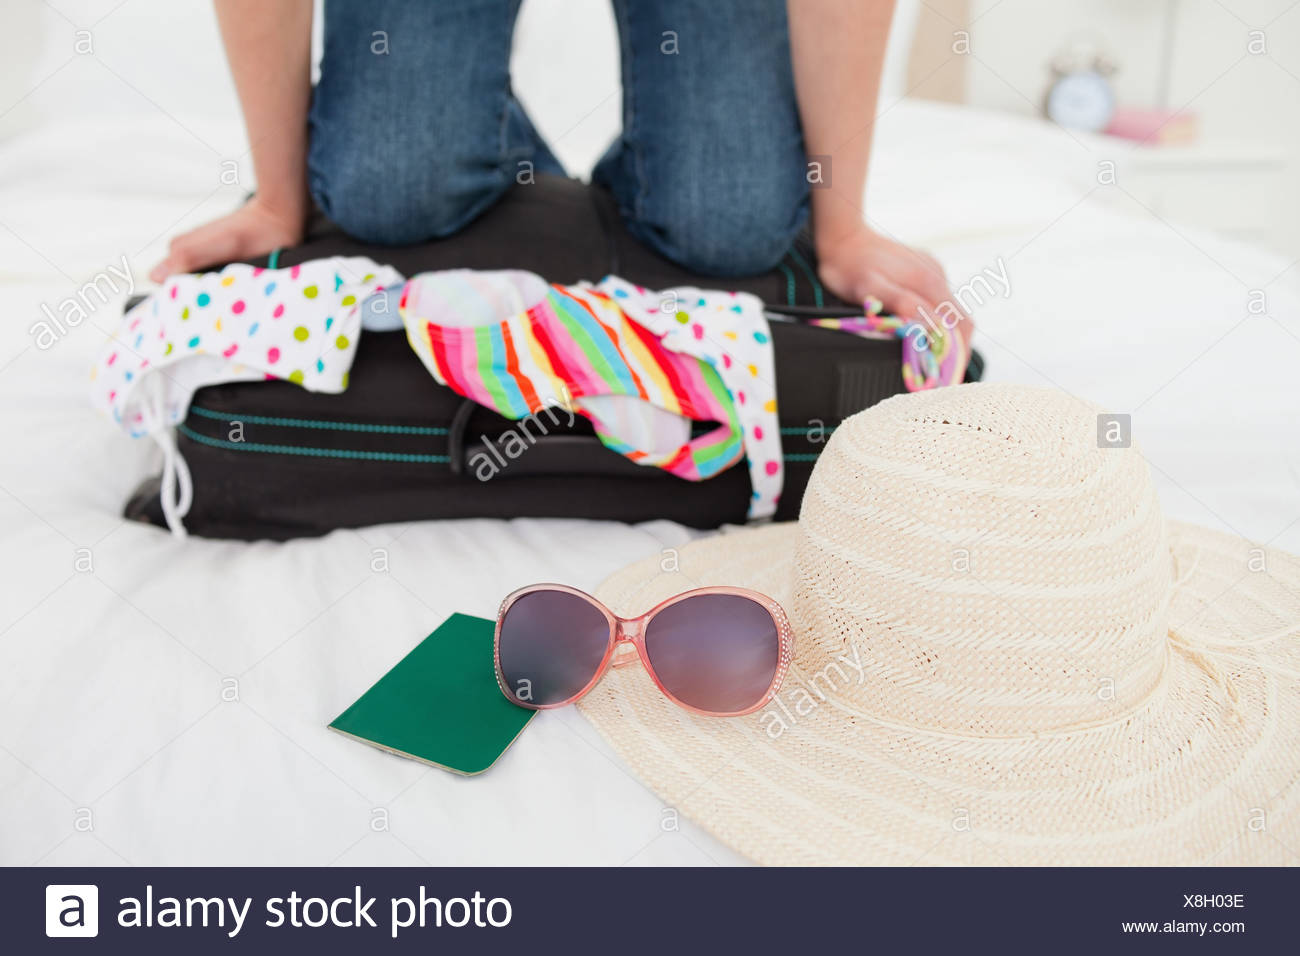 Woman kneeling on suitcase in an attempt to make things fit - Stock Image